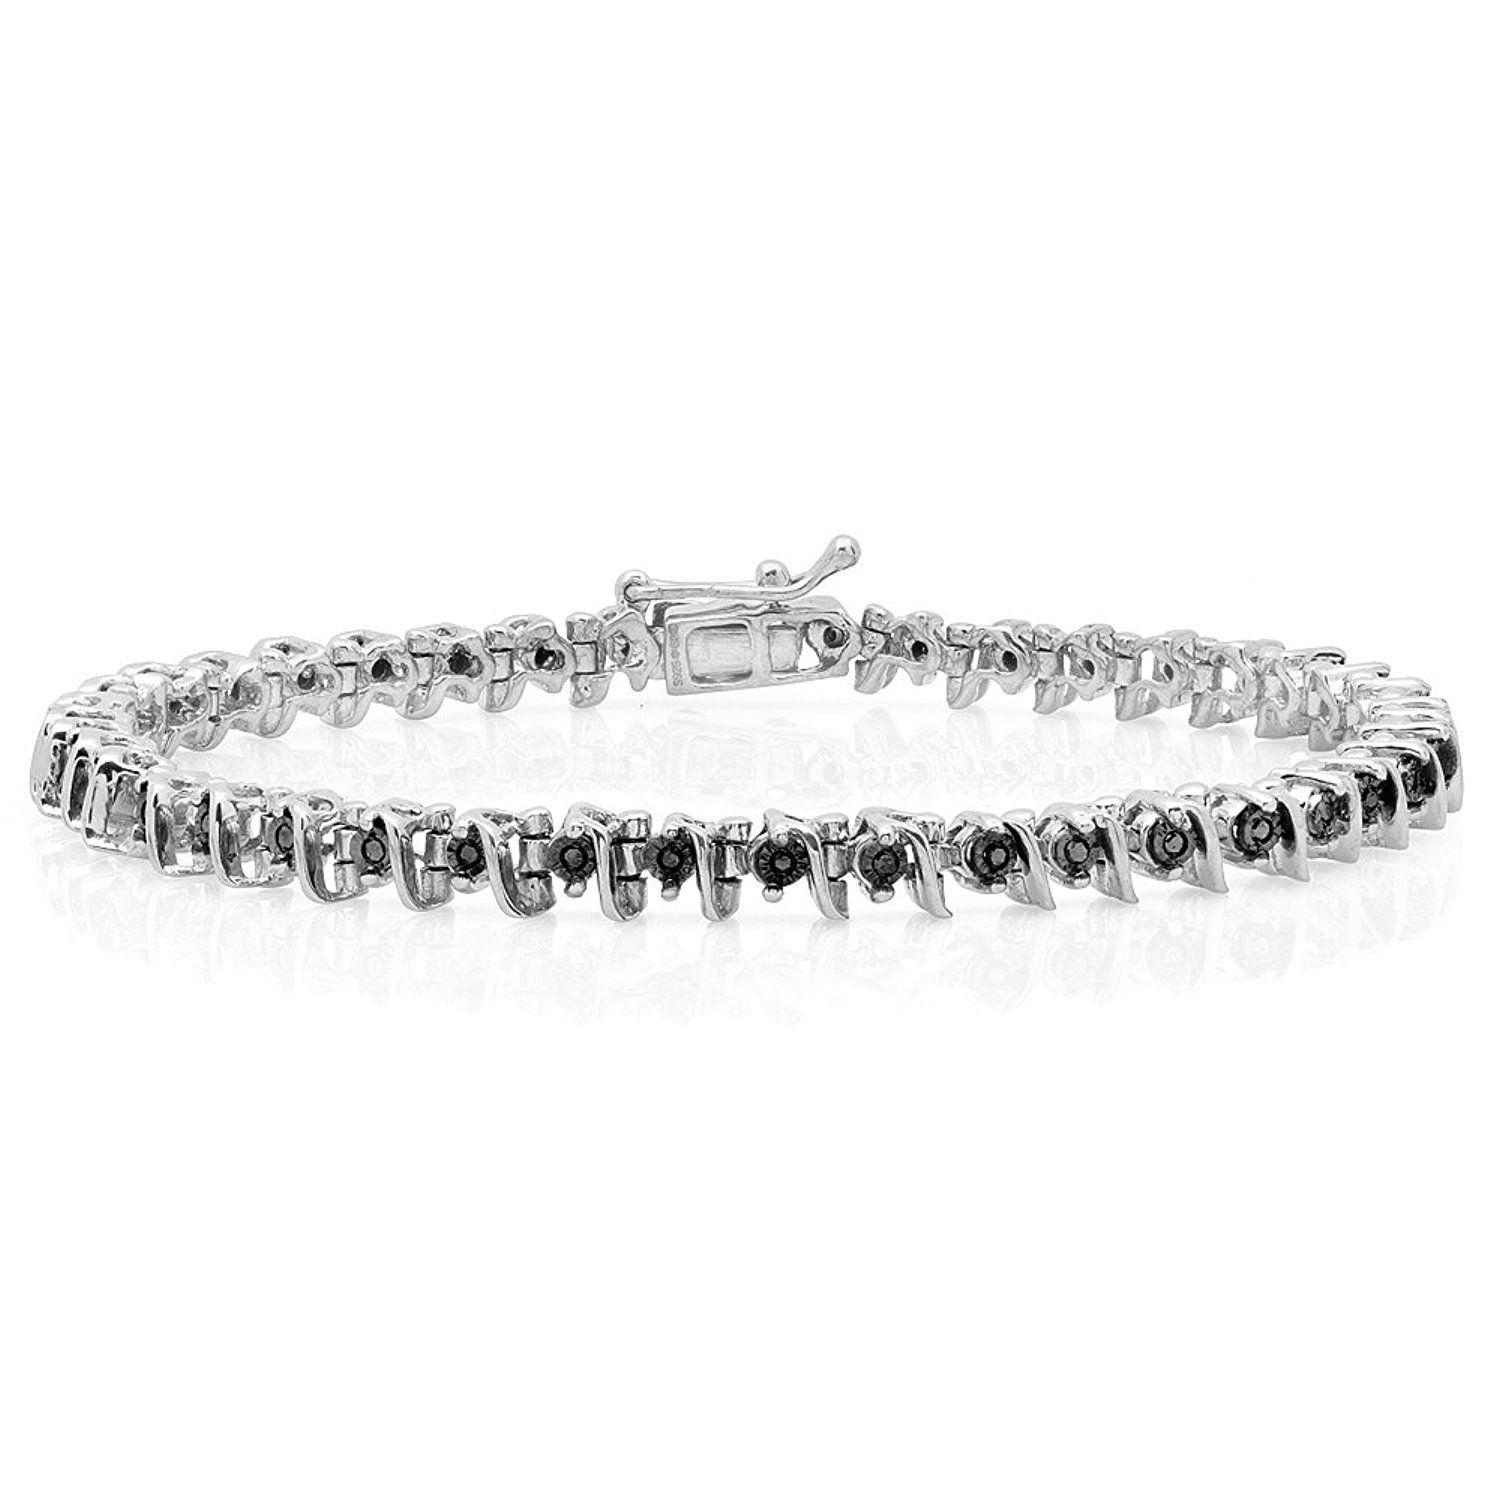 On Dazzling Rock For Tennis Diamond Bracelet Offers Matchless Collection Of Bracelets At Affordable Prices